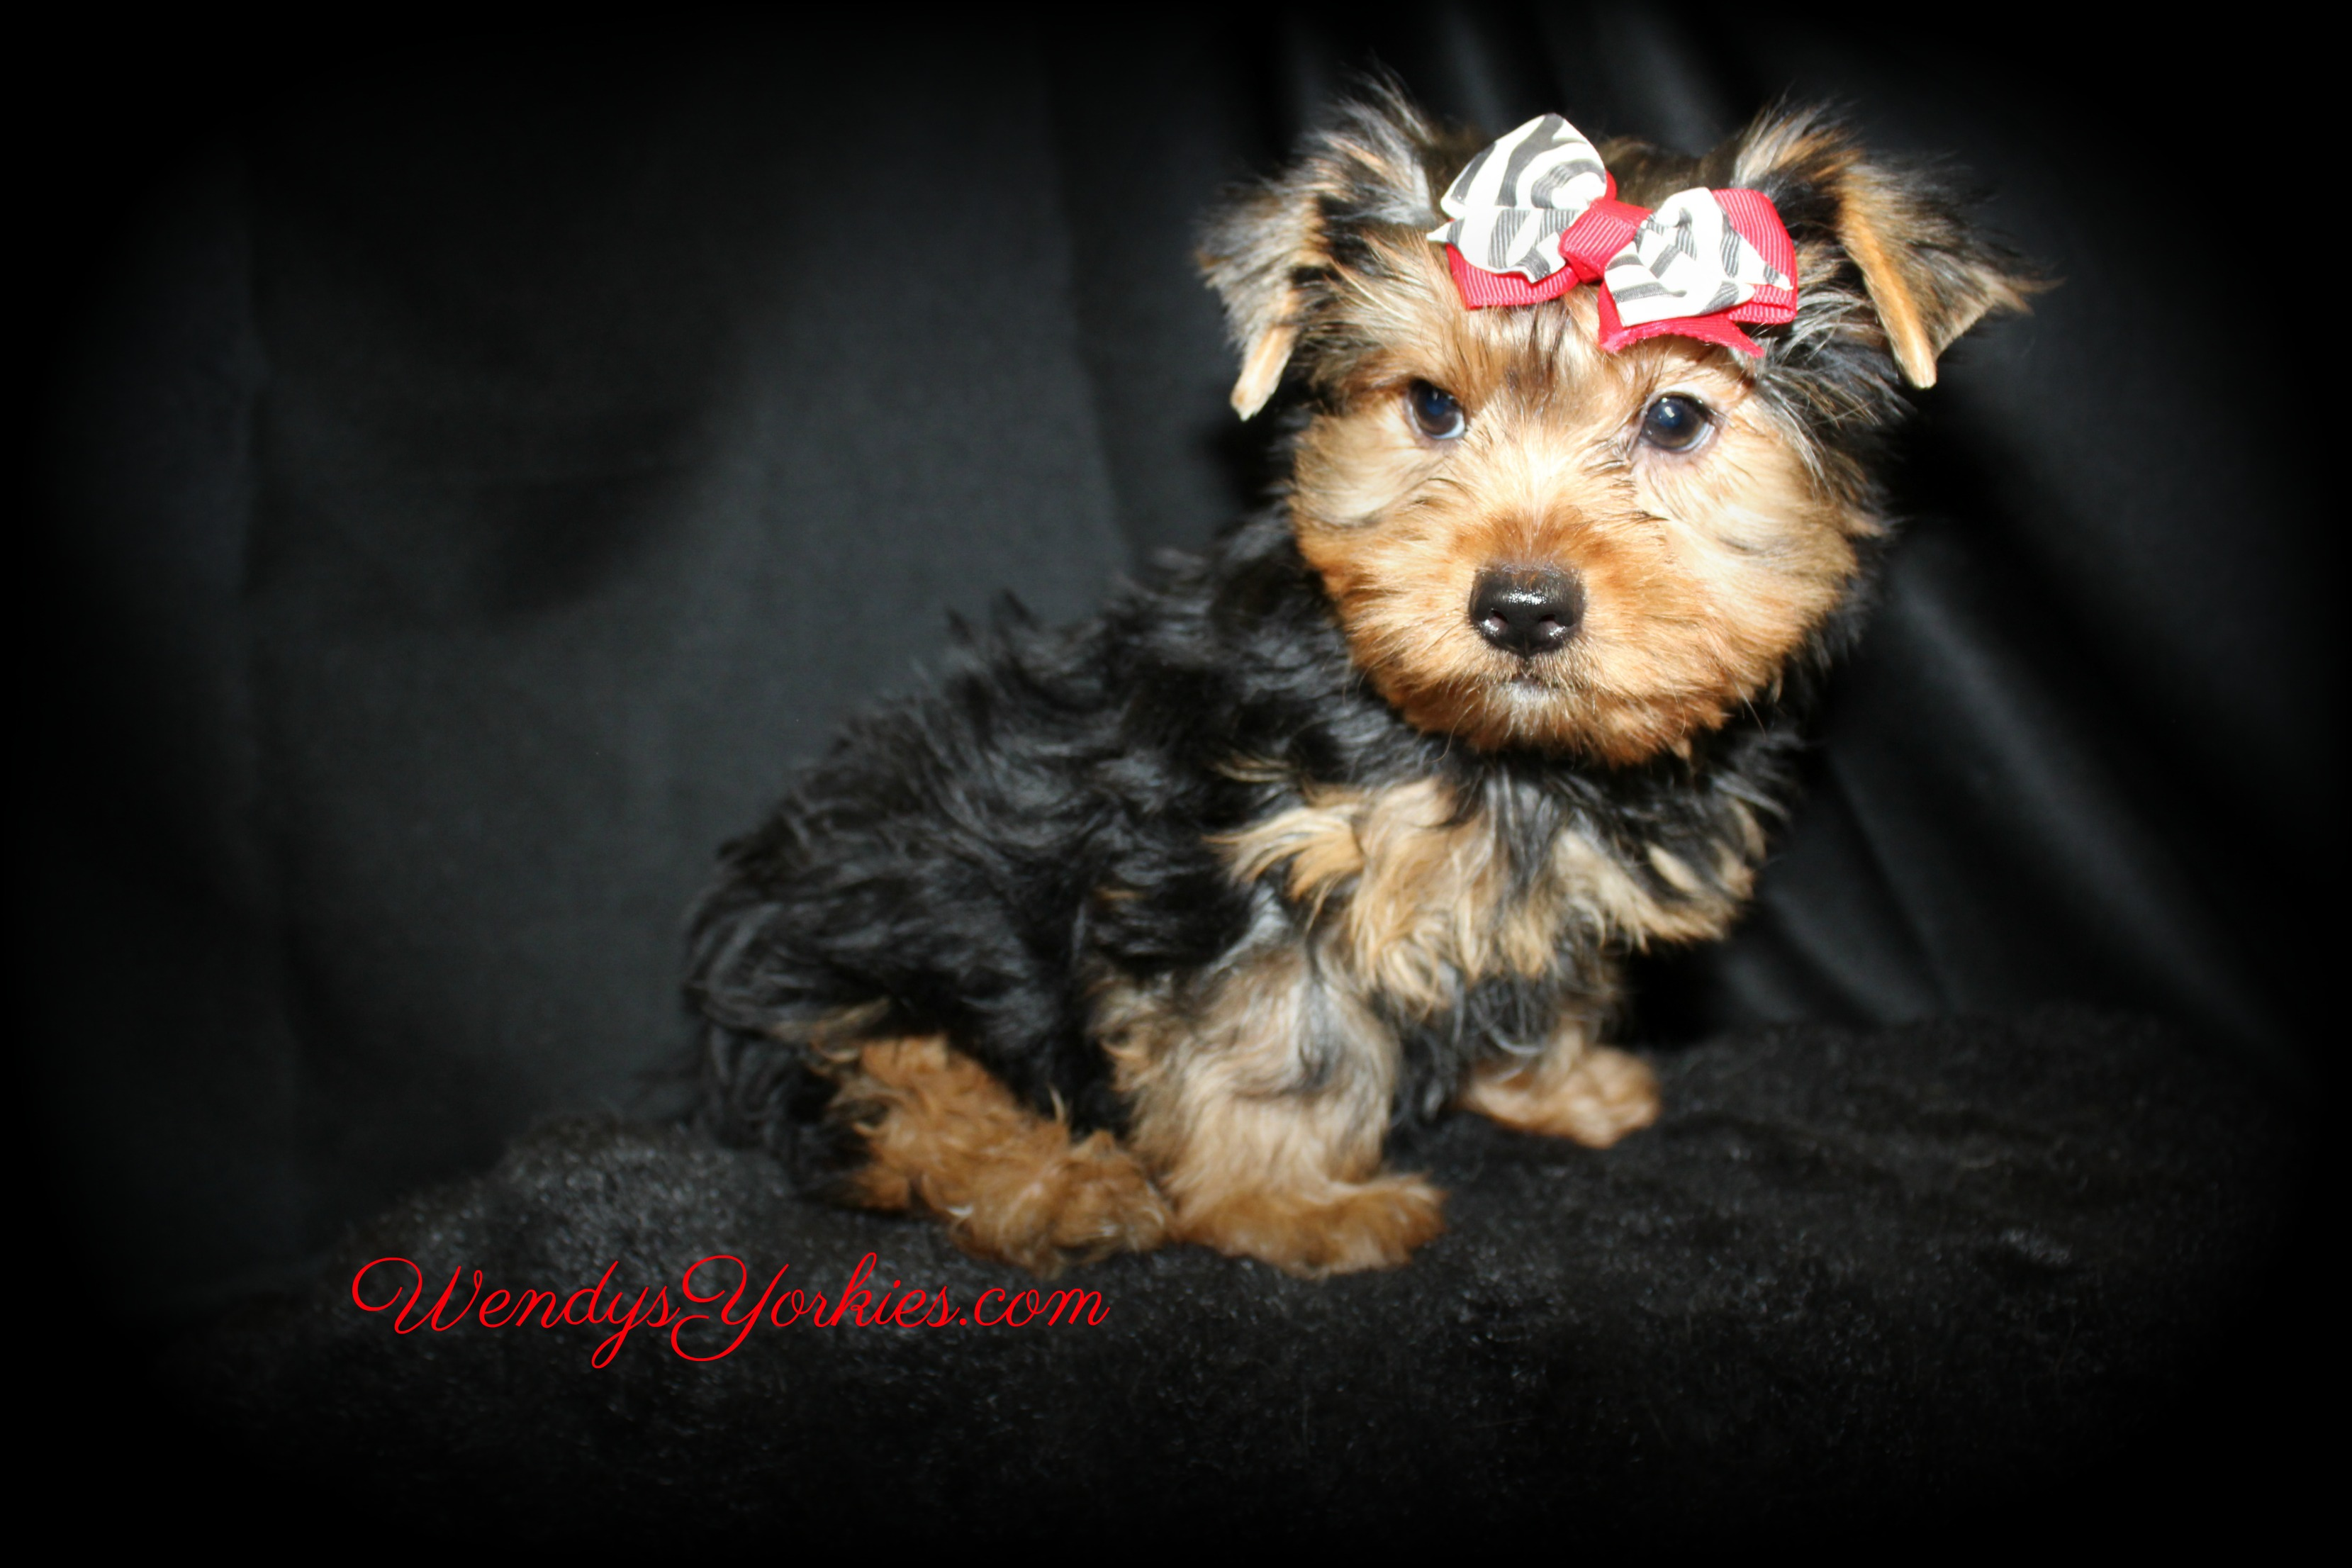 Rascal the Yorkie puppy, WendysYorkies.com